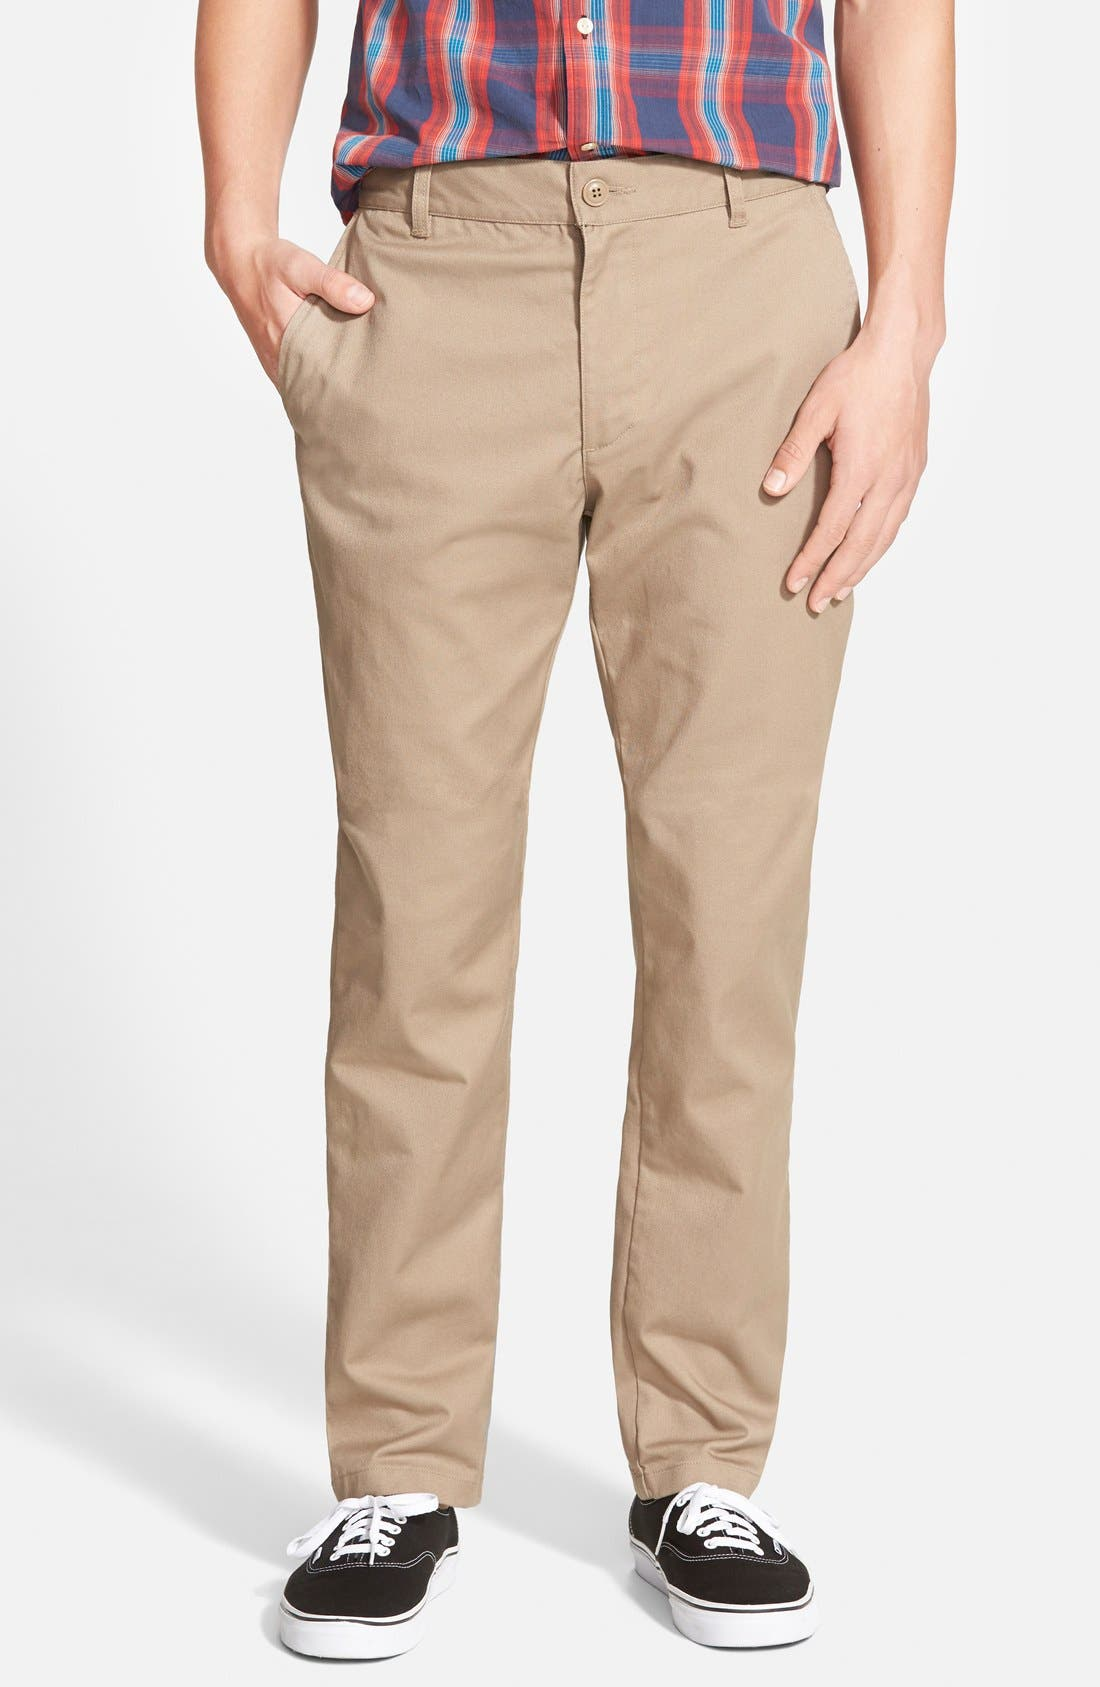 Alternate Image 1 Selected - RVCA 'The Week-End' Slim Straight Leg Stretch Twill Chinos (Online Only)